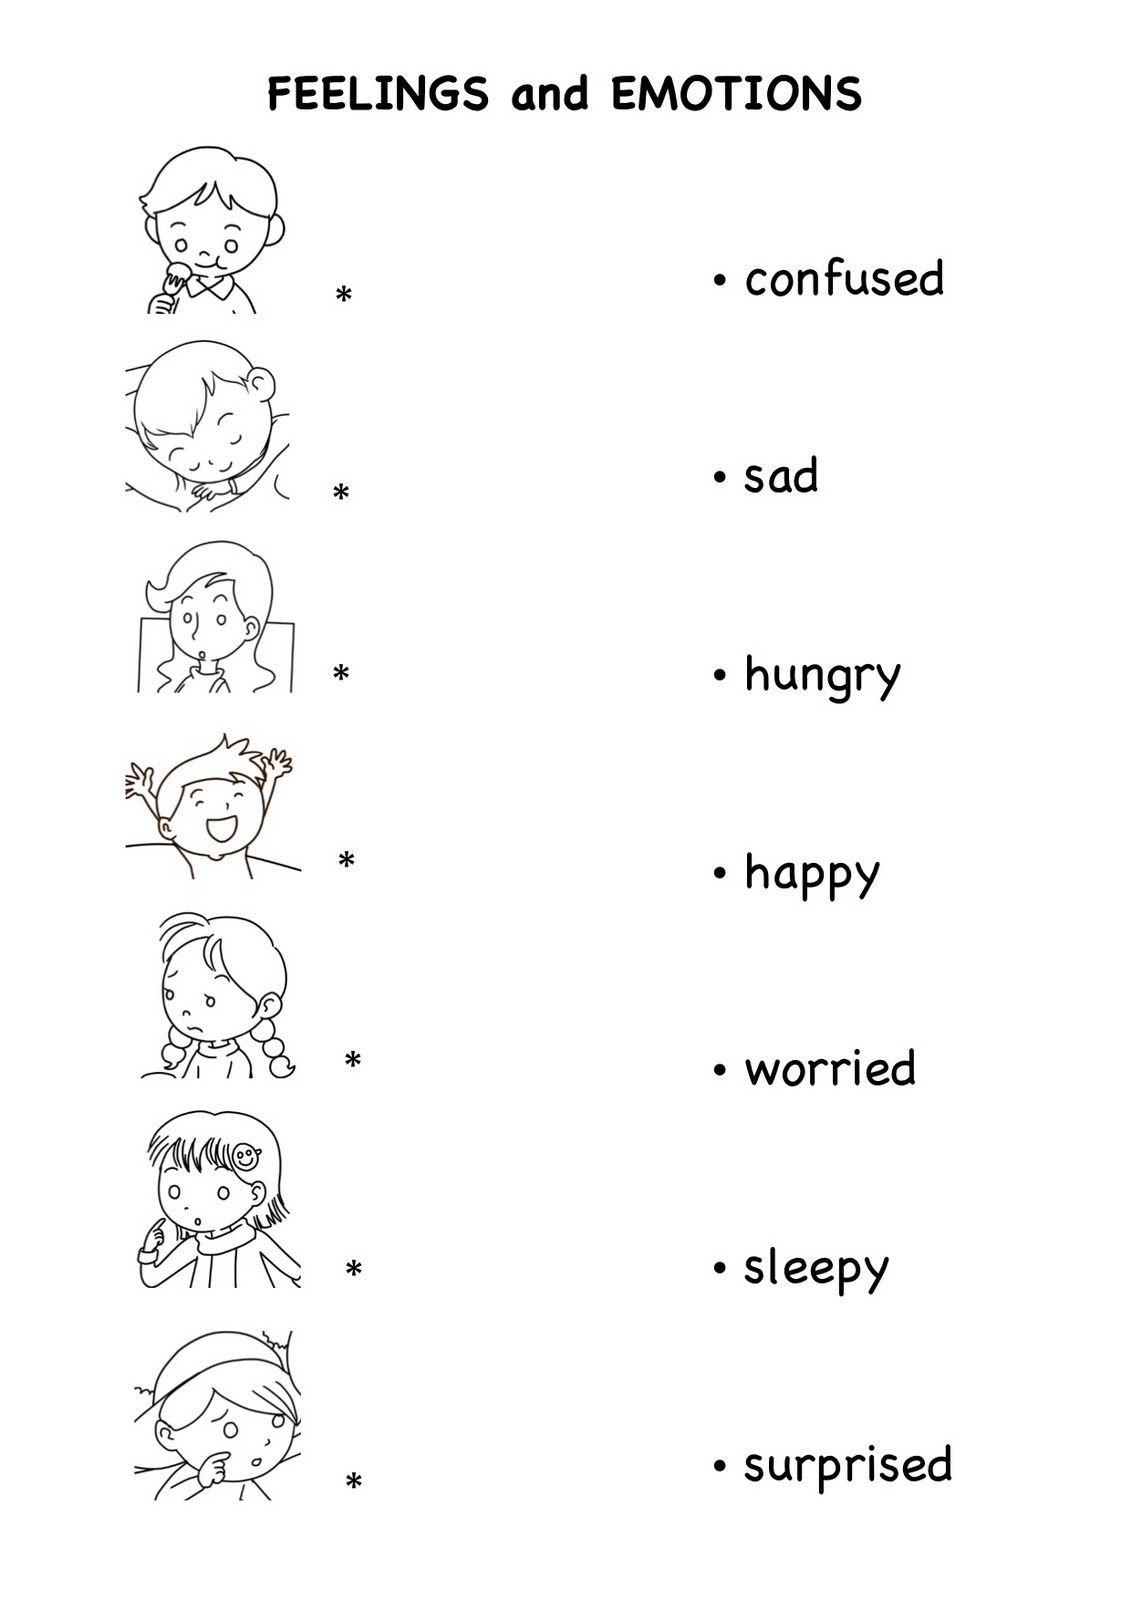 Feelings and Emotions Worksheets Printable Emotions Worksheets Pdf